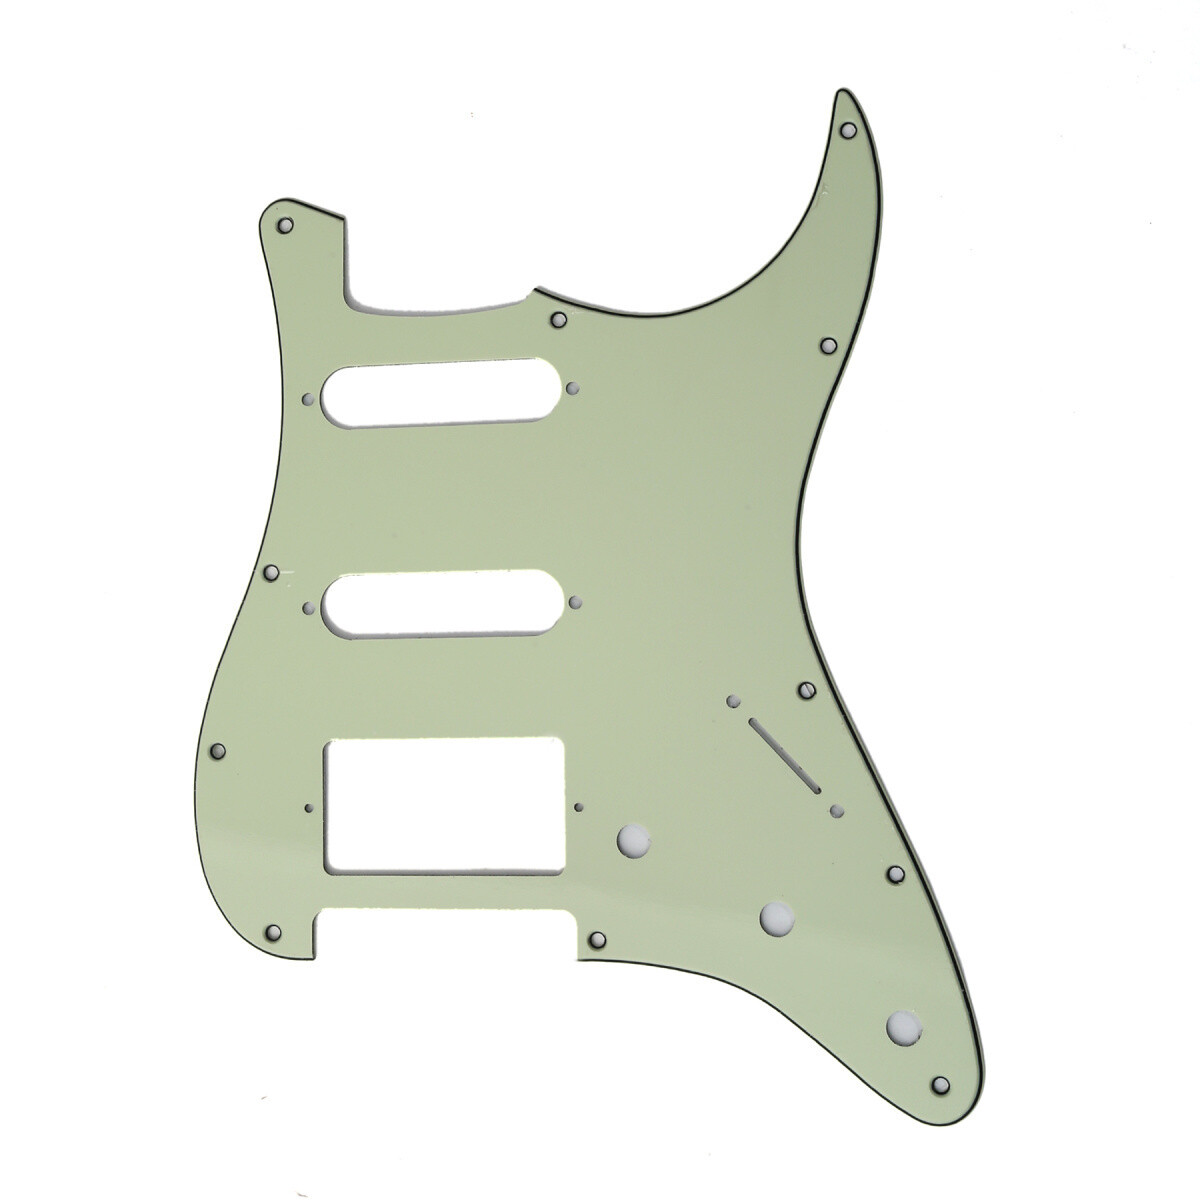 Brio 11 Hole Strat® Pickguard for Fender US/Mex Made Standard Stratocaster Modern Style Mint Green 3 Ply